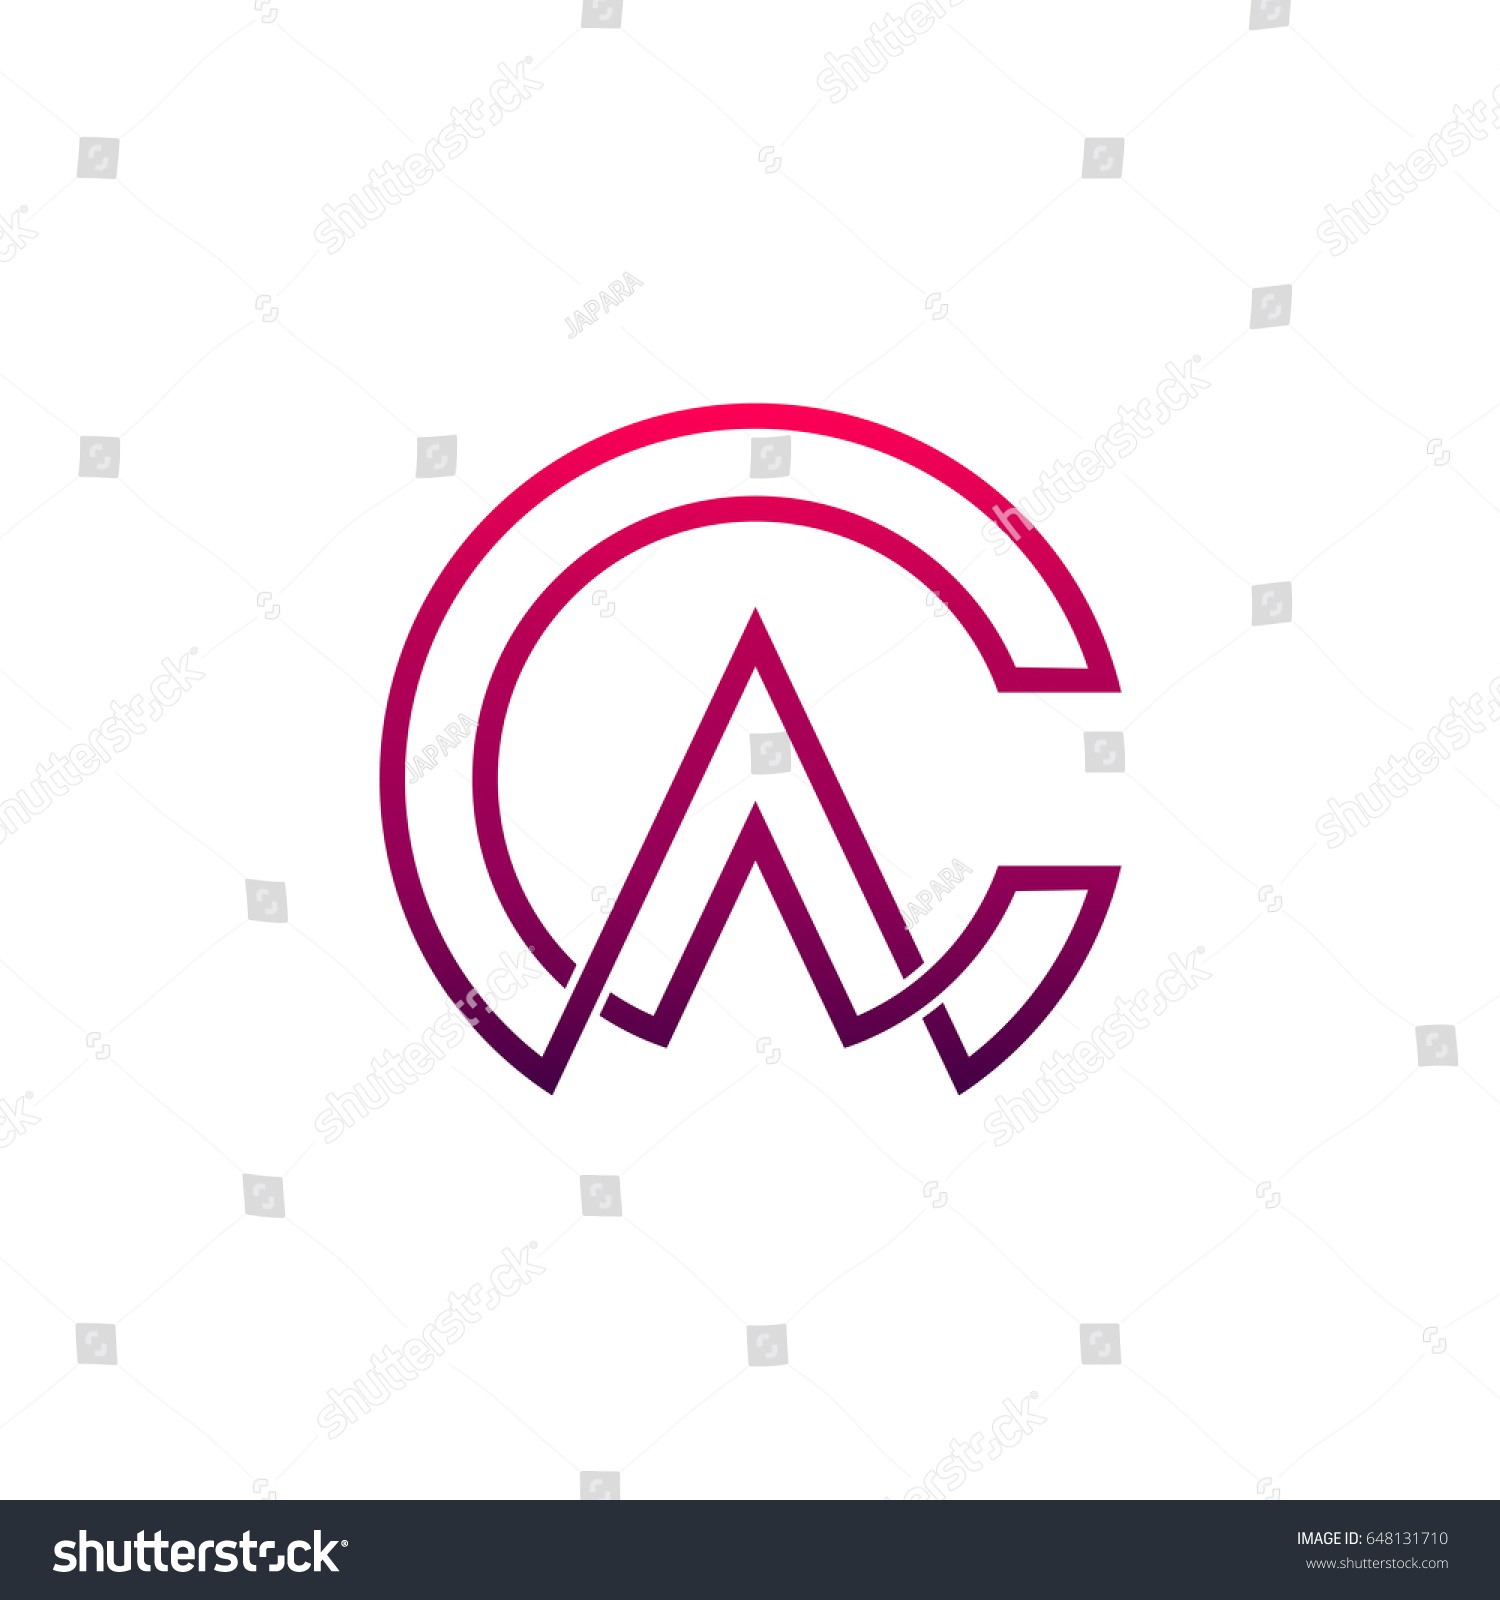 ca logo letter c and letter a initial logo template